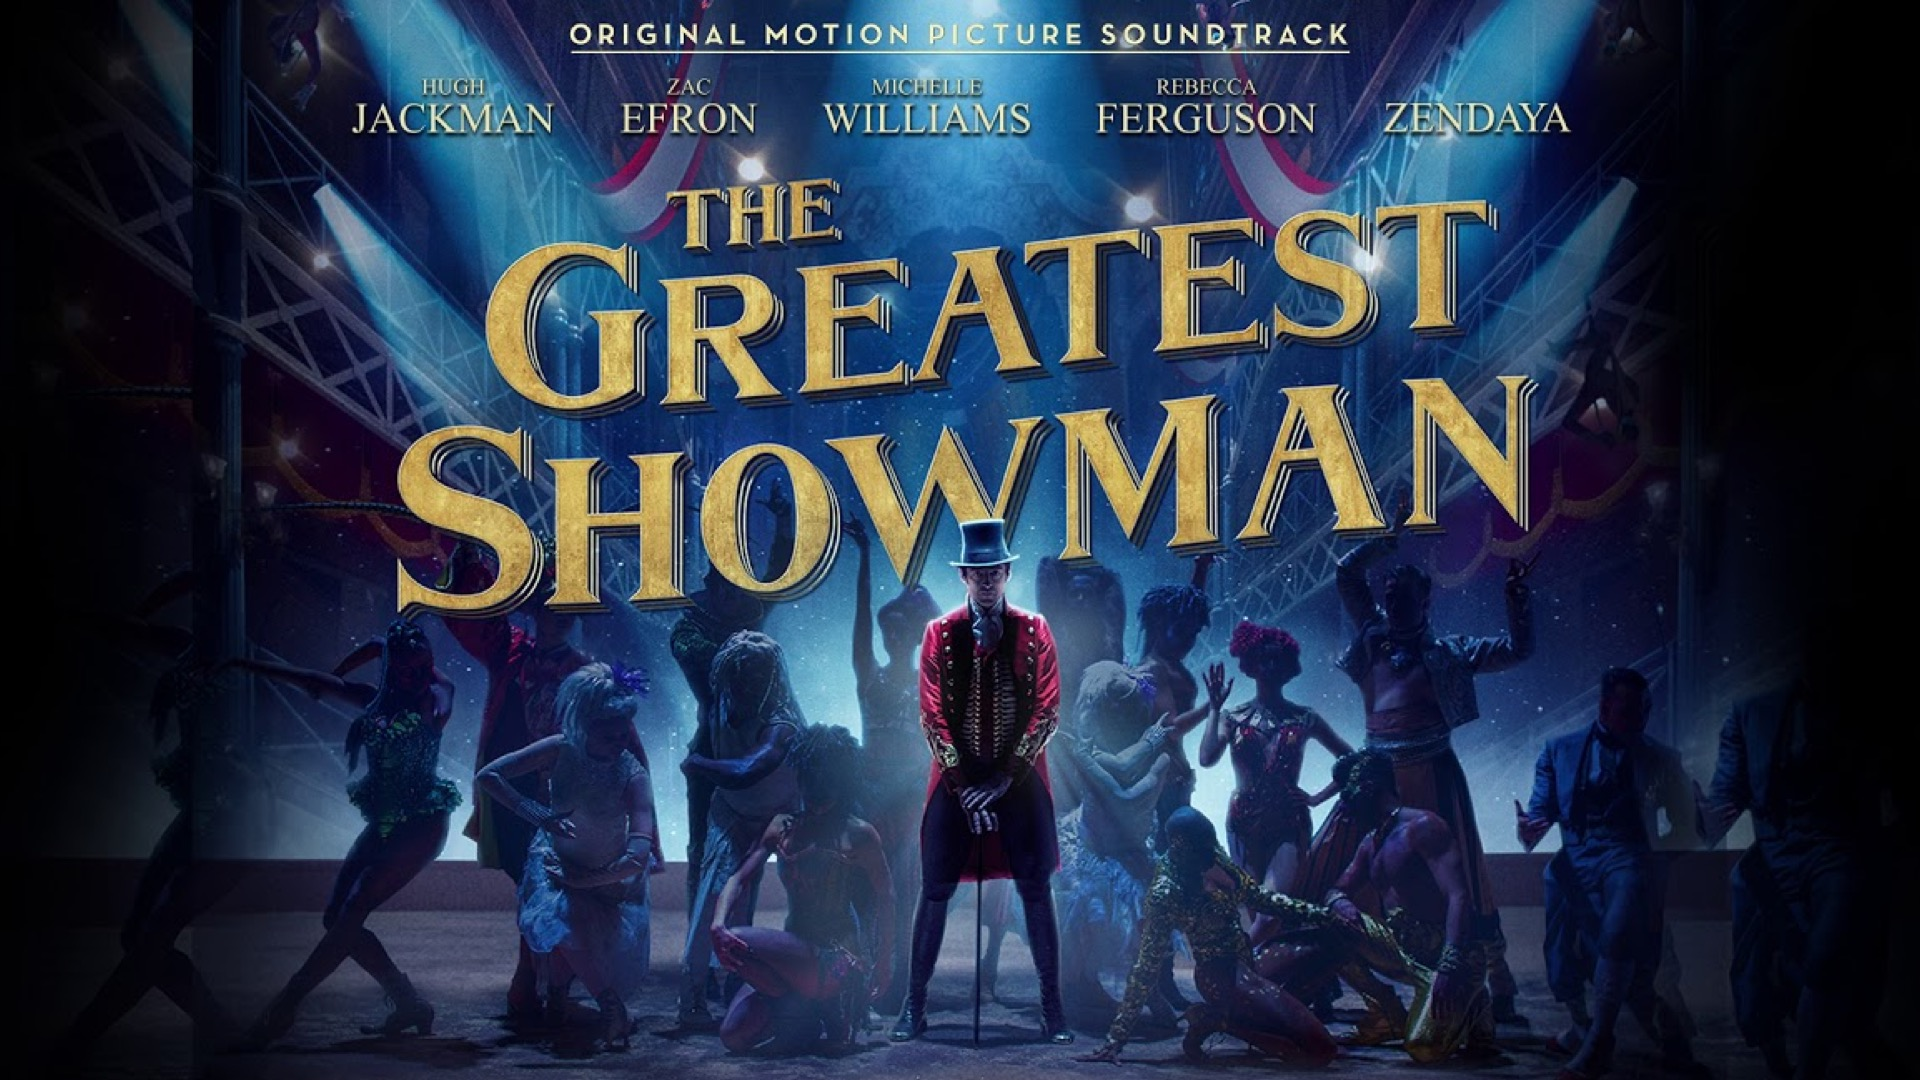 Showman Graphic.jpg